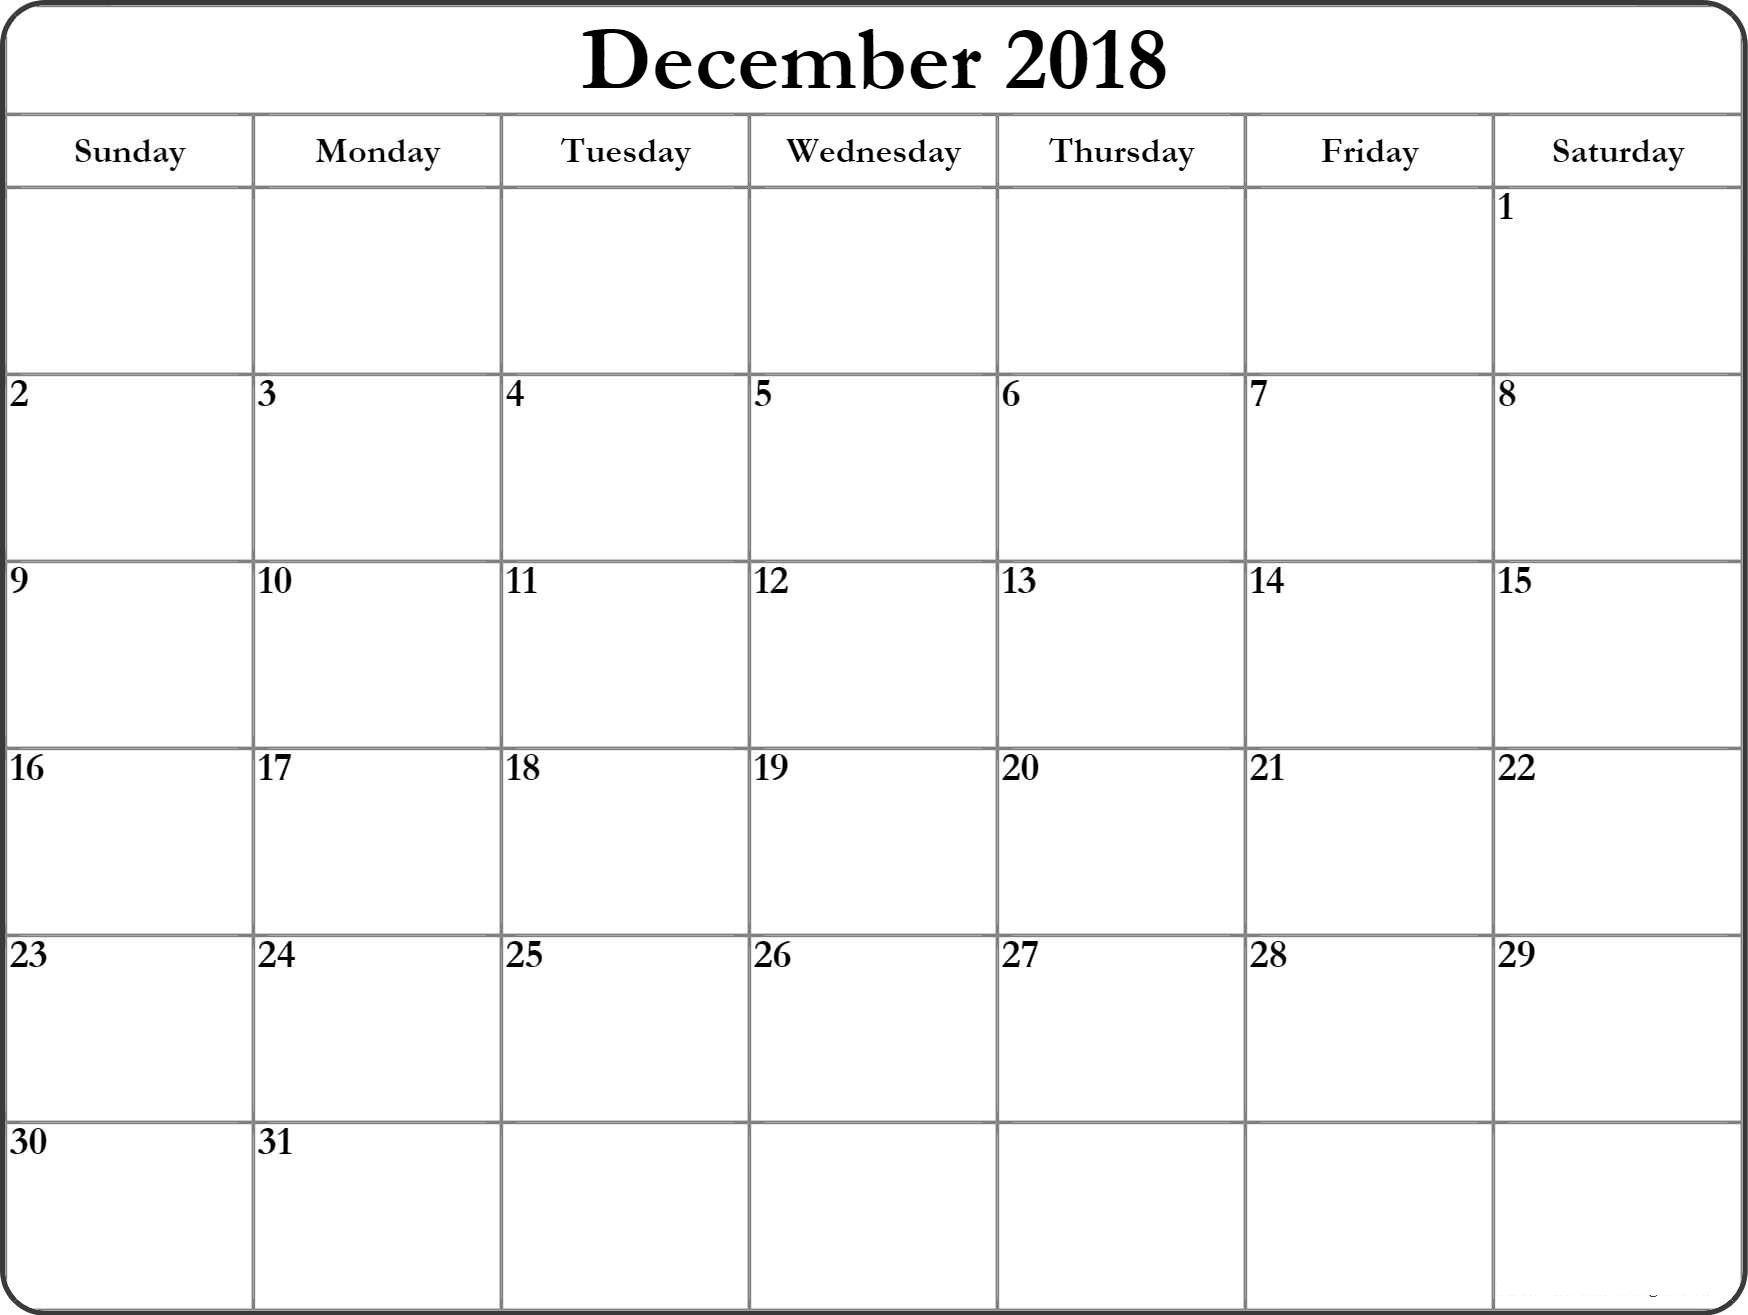 December 2018 Calendar Editable Pages